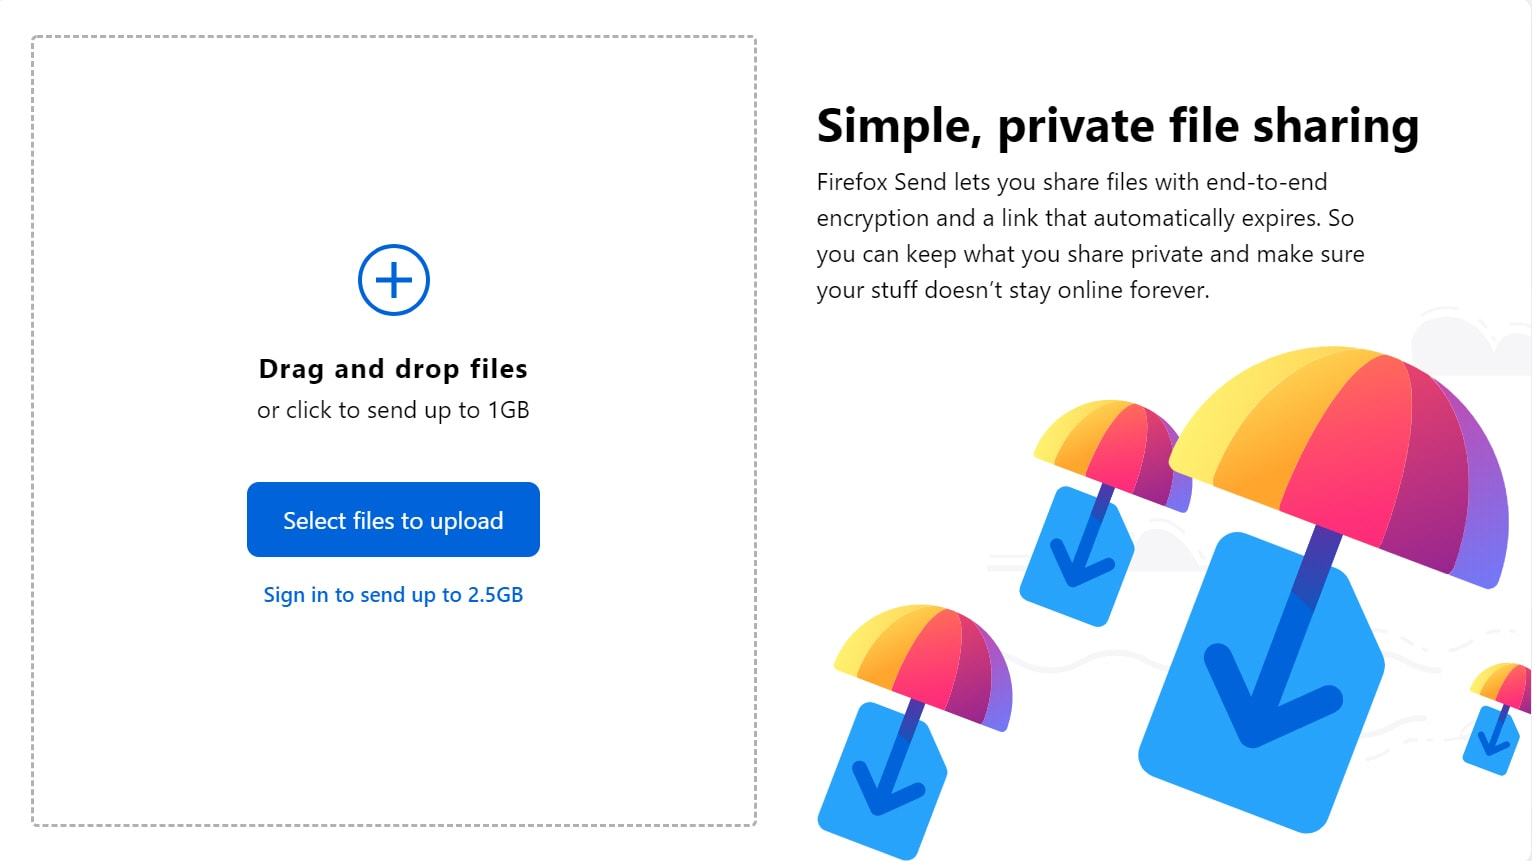 Share files securely with Mozilla's new Firefox Send free file sharing service